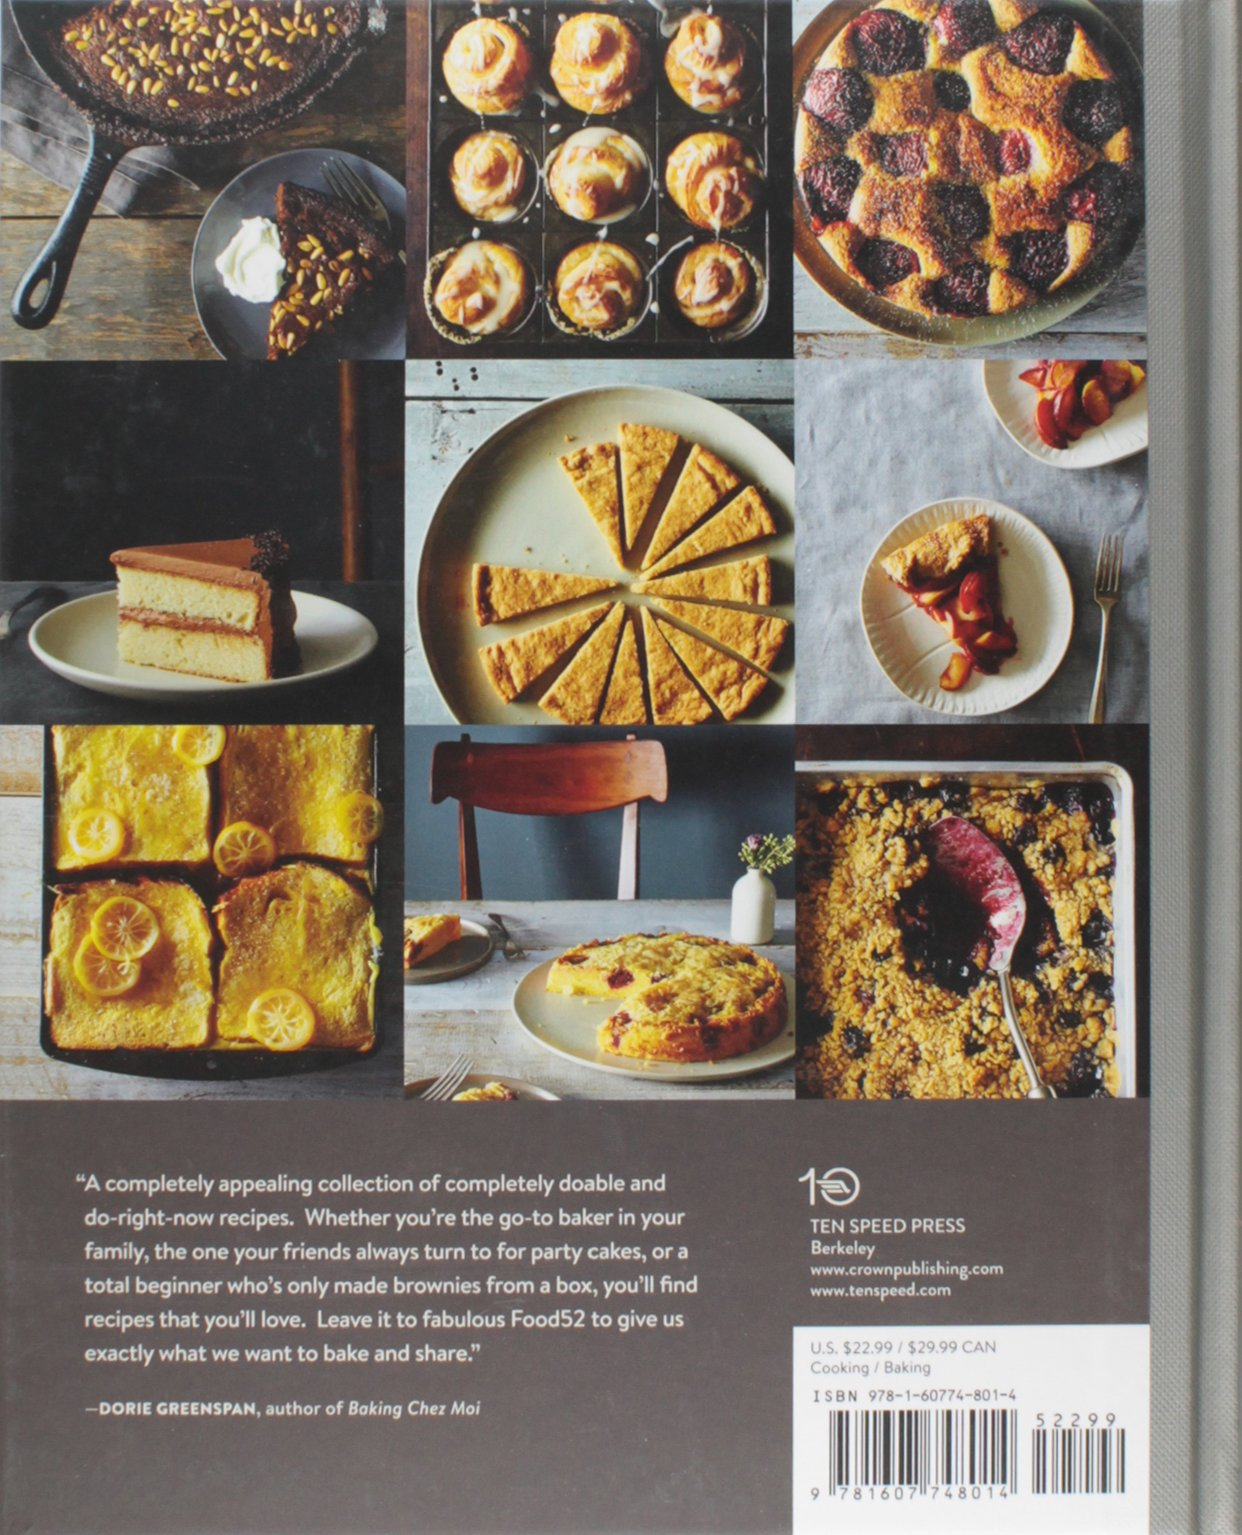 Food52 baking 60 sensational treats you can pull off in a snap food52 baking 60 sensational treats you can pull off in a snap food52 works editors of food52 amanda hesser merrill stubbs 9781607748014 amazon forumfinder Images